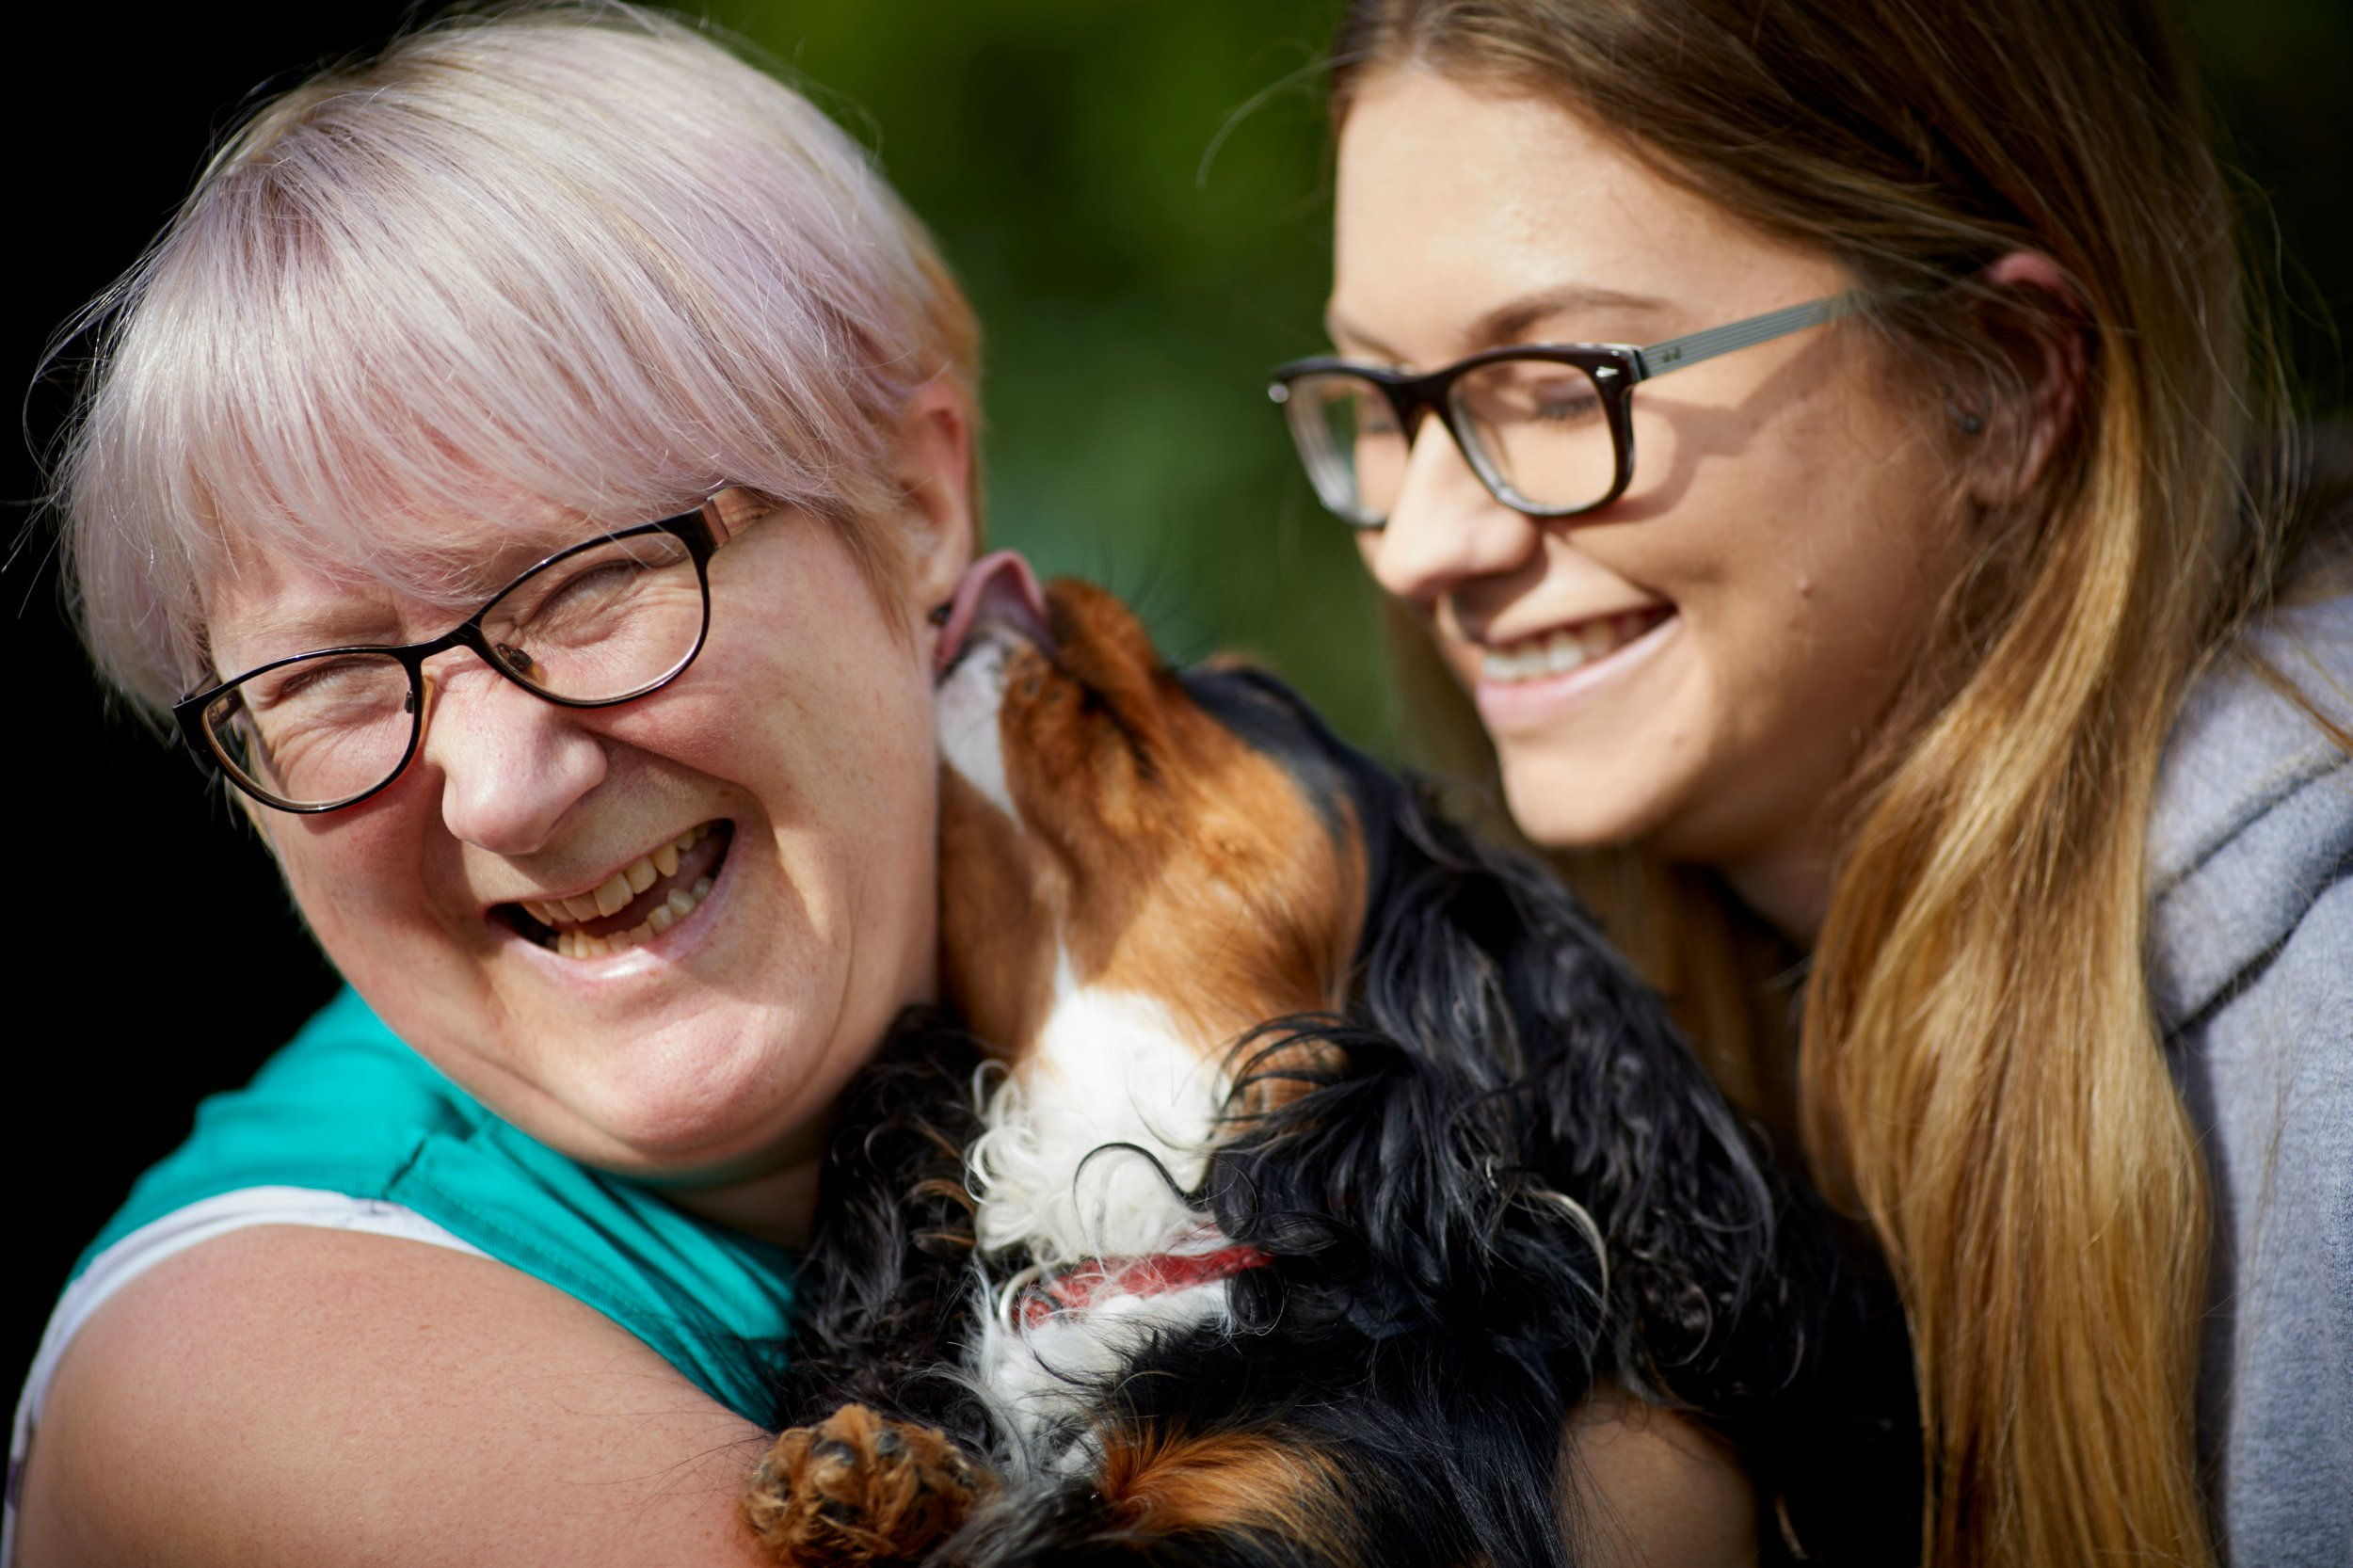 """ONE USE ONLY, NO SALES NO ARCHIVE Undated handout photo of Sharon Hall and Alana Tennent, 24 . Dog-lovers are being encouraged to help the lonely and depressed in their community by sharing some """"animal magic"""" at a cafe in Manchester. PRESS ASSOCIATION Photo. Issue date: Sunday September 9, 2018. Animal-assisted therapy, which began as a treatment for schizophrenics and patients with bipolar disorder at a local hospital, is now being offered at the pop-up cafe, where dog owners can take their pets to help people struggling with mental health issues. Paints And Paws Pop Inn is the brainchild of Hall, 54, who found that buying a puppy helped her cope with the loss of her parents. The cafe is an extension of successful work Ms Hall already does as part of her pet and art therapy service, Noah?s Art, which has used animal rescue therapy at North Manchester General Hospital. See PA story ANIMALS Mental. Photo credit should read: Mark Waugh/PA Wire NOTE TO EDITORS: This handout photo may only be used in for editorial reporting purposes for the contemporaneous illustration of events, things or the people in the image or facts mentioned in the caption. Reuse of the picture may require further permission from the copyright holder."""